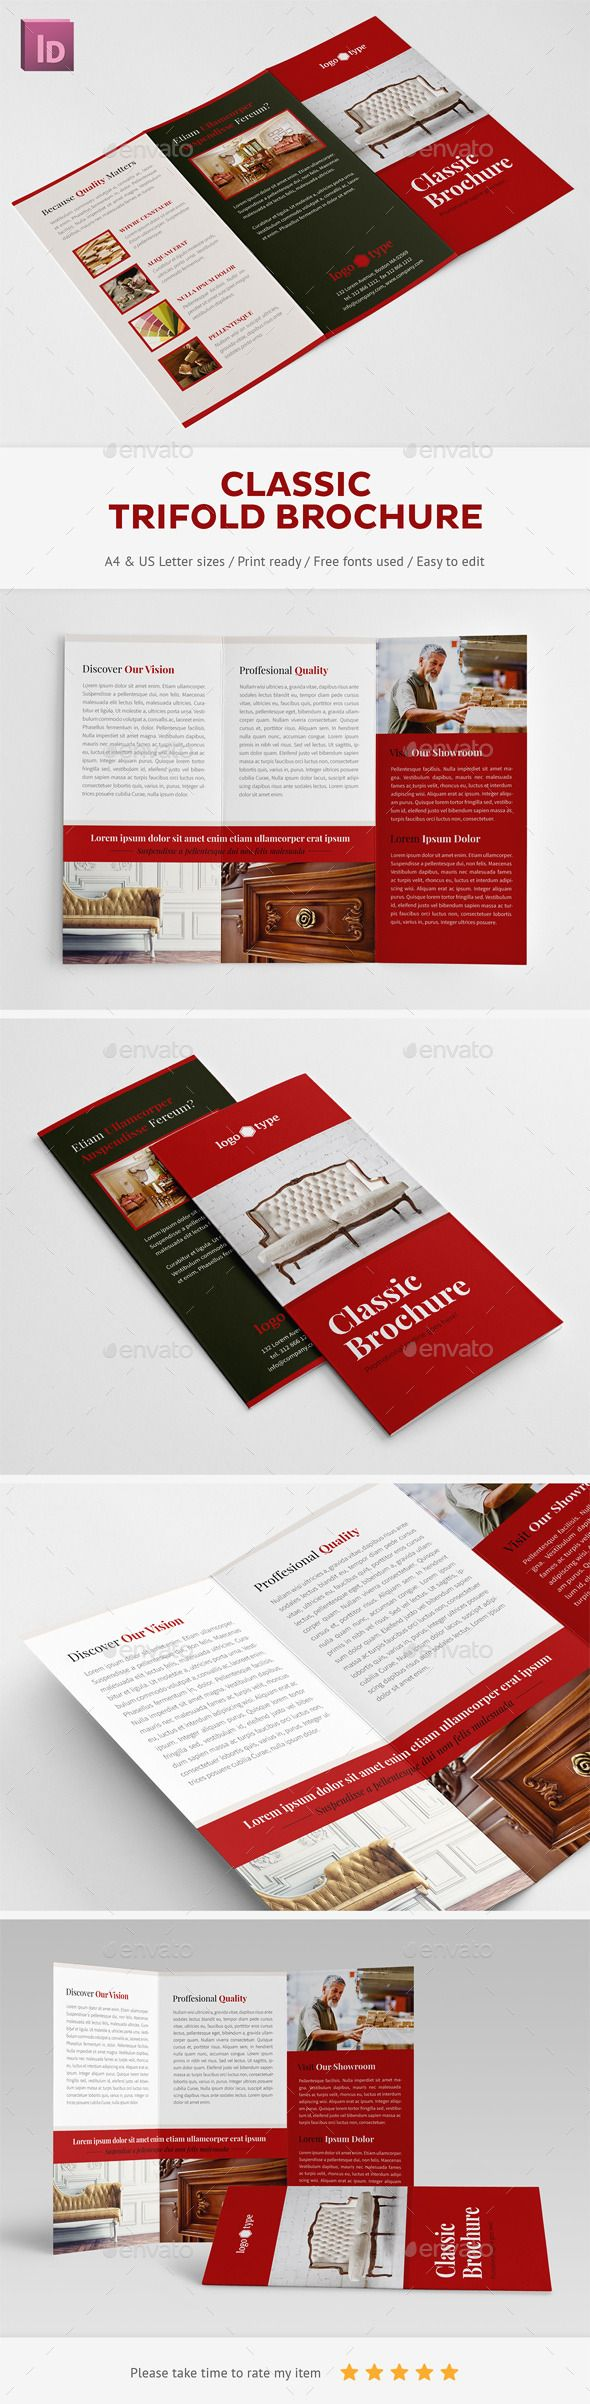 Classic Trifold Brochure - Corporate Brochures